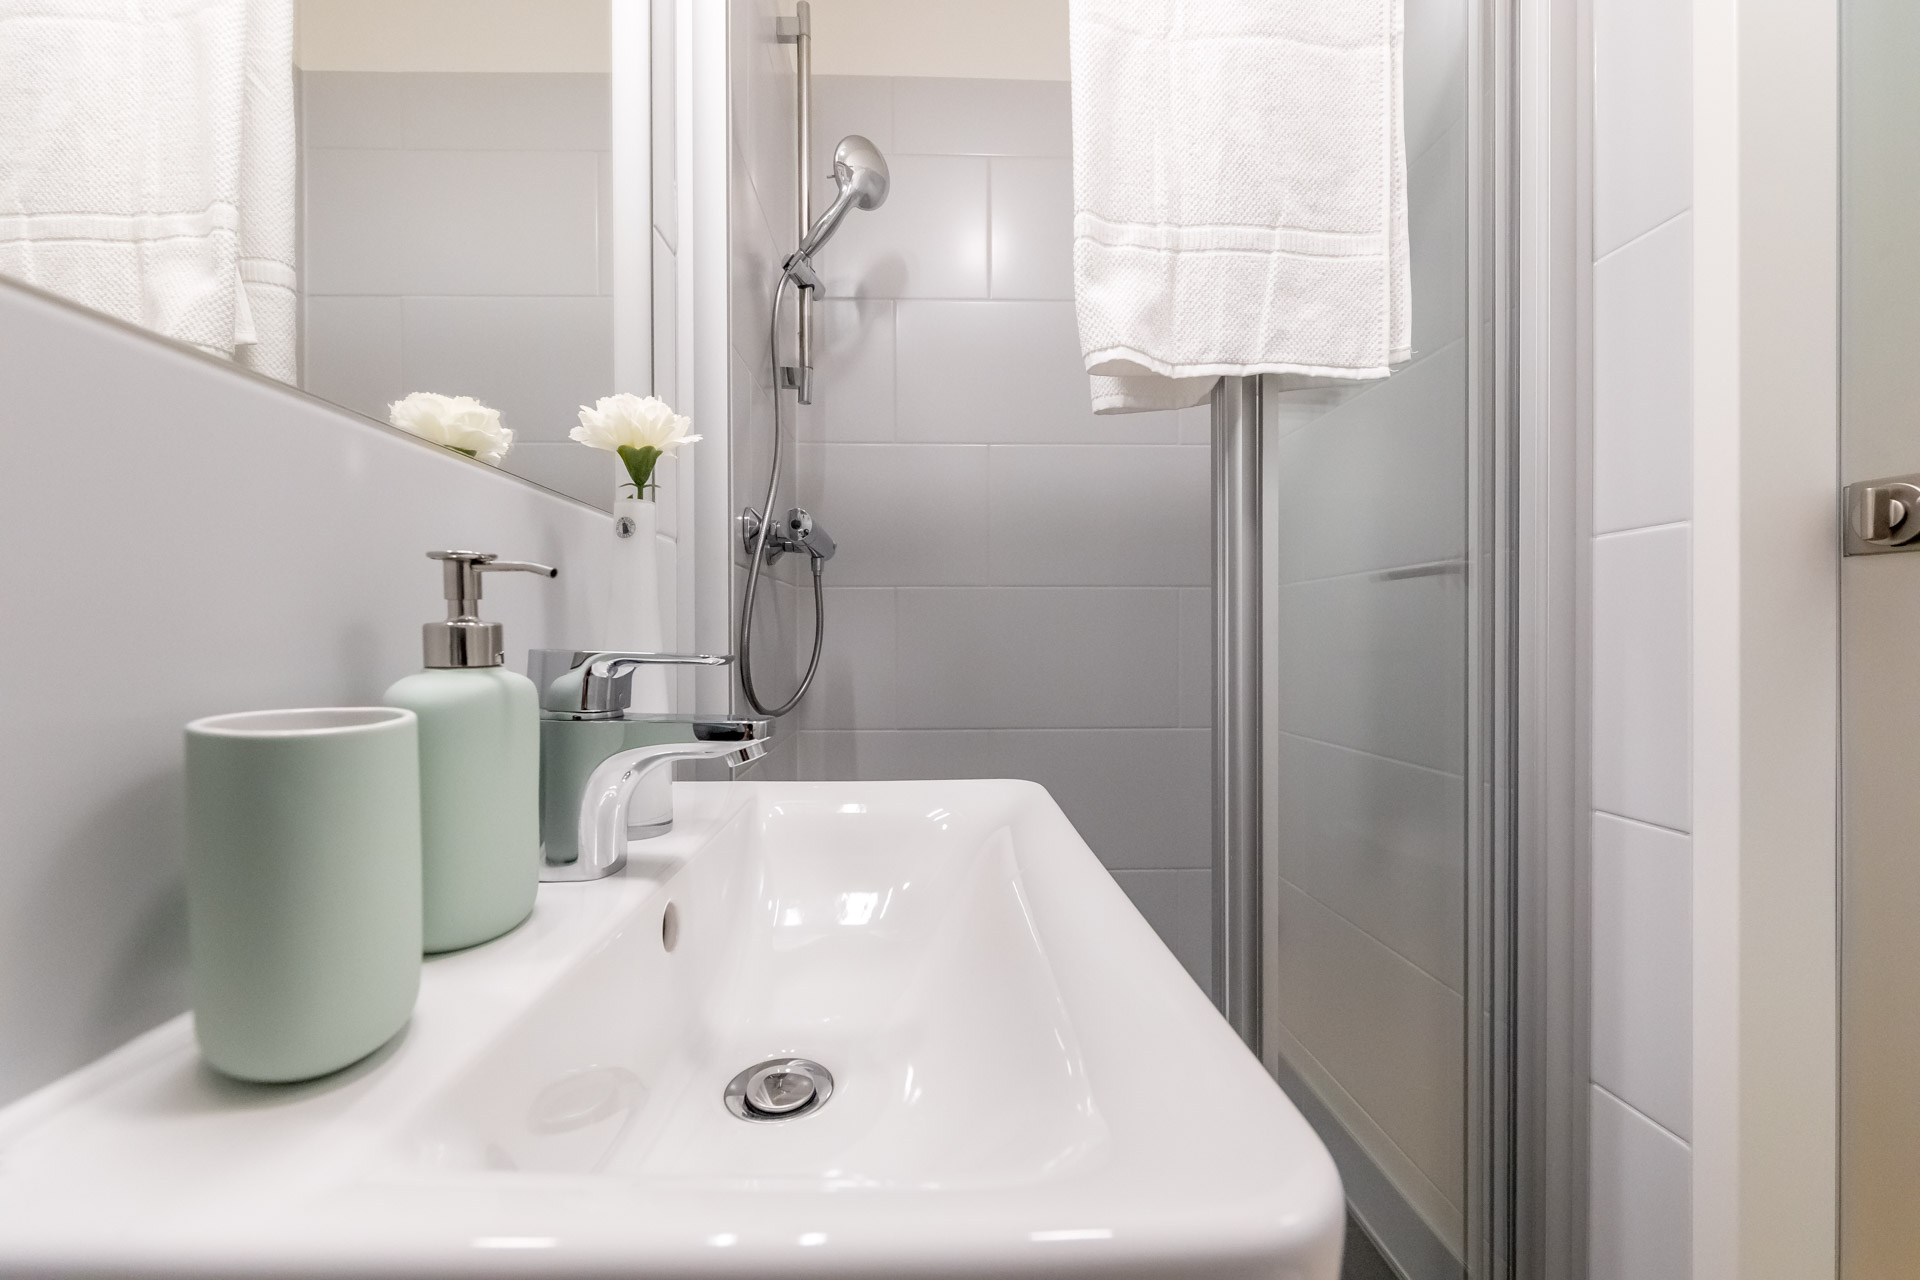 THE FIZZ Double Apartment - Badezimmer Close-Up